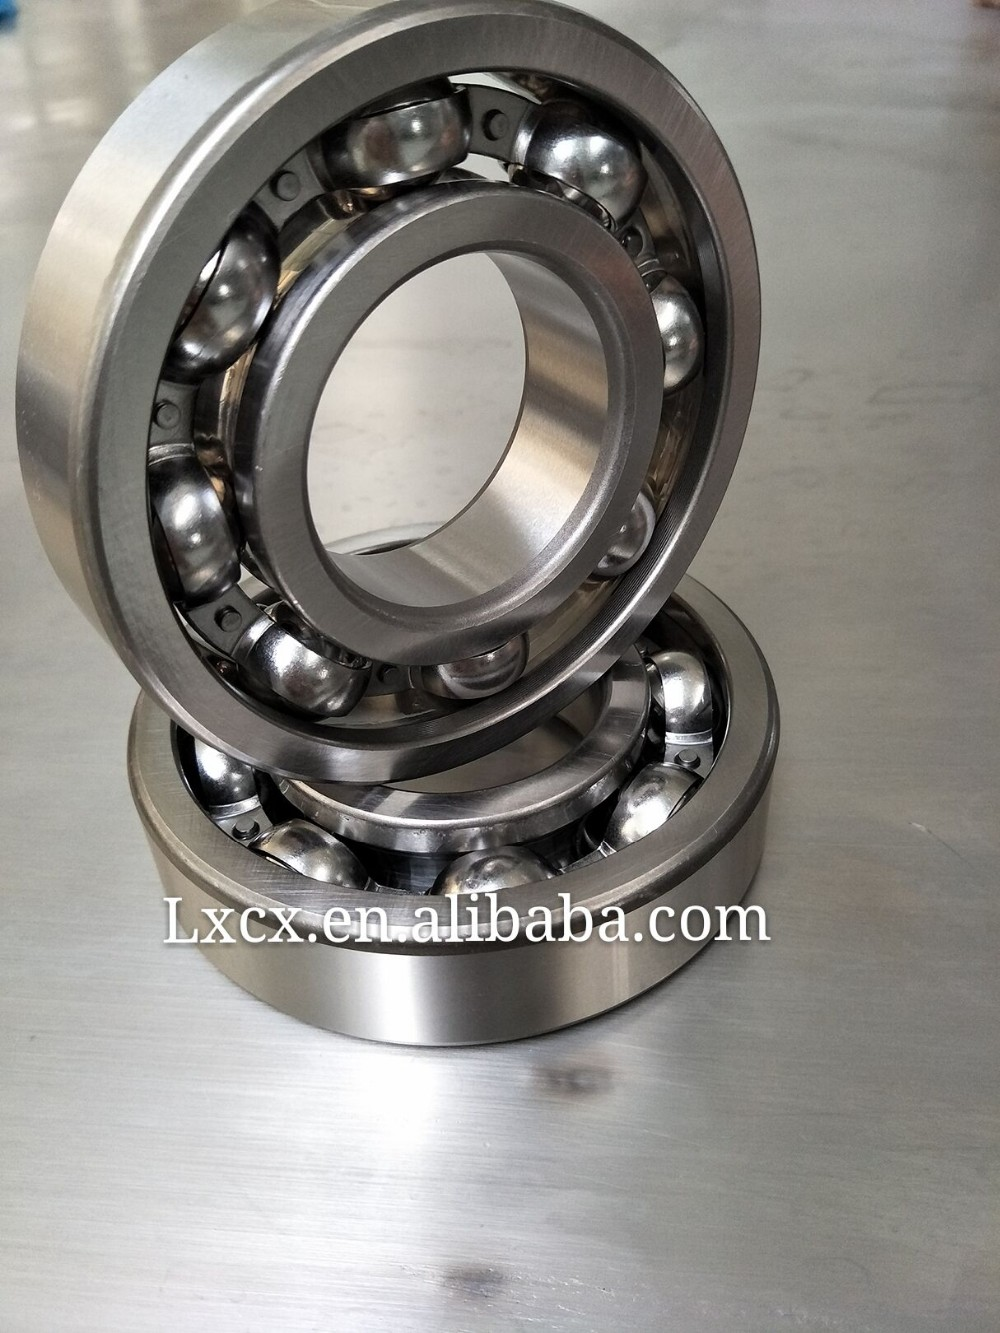 Quality bearing Low price deep groove ball bearing 6028--RS(140*210*33mm)OPEN Z ZZ N RZ RS 2RZ 2RS Manufacture factory